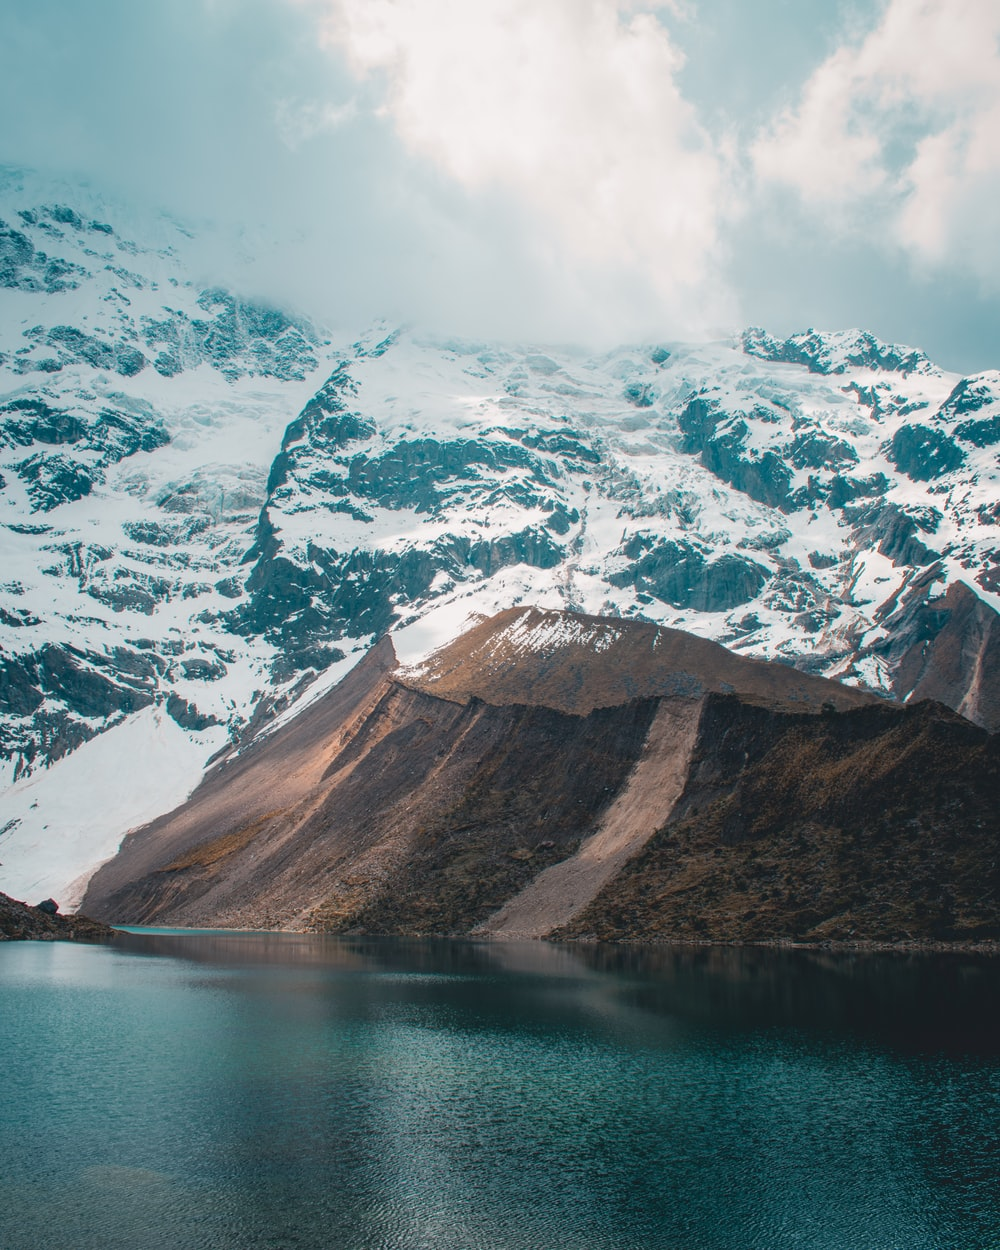 best 100 natural images hd download free nature pictures unsplash